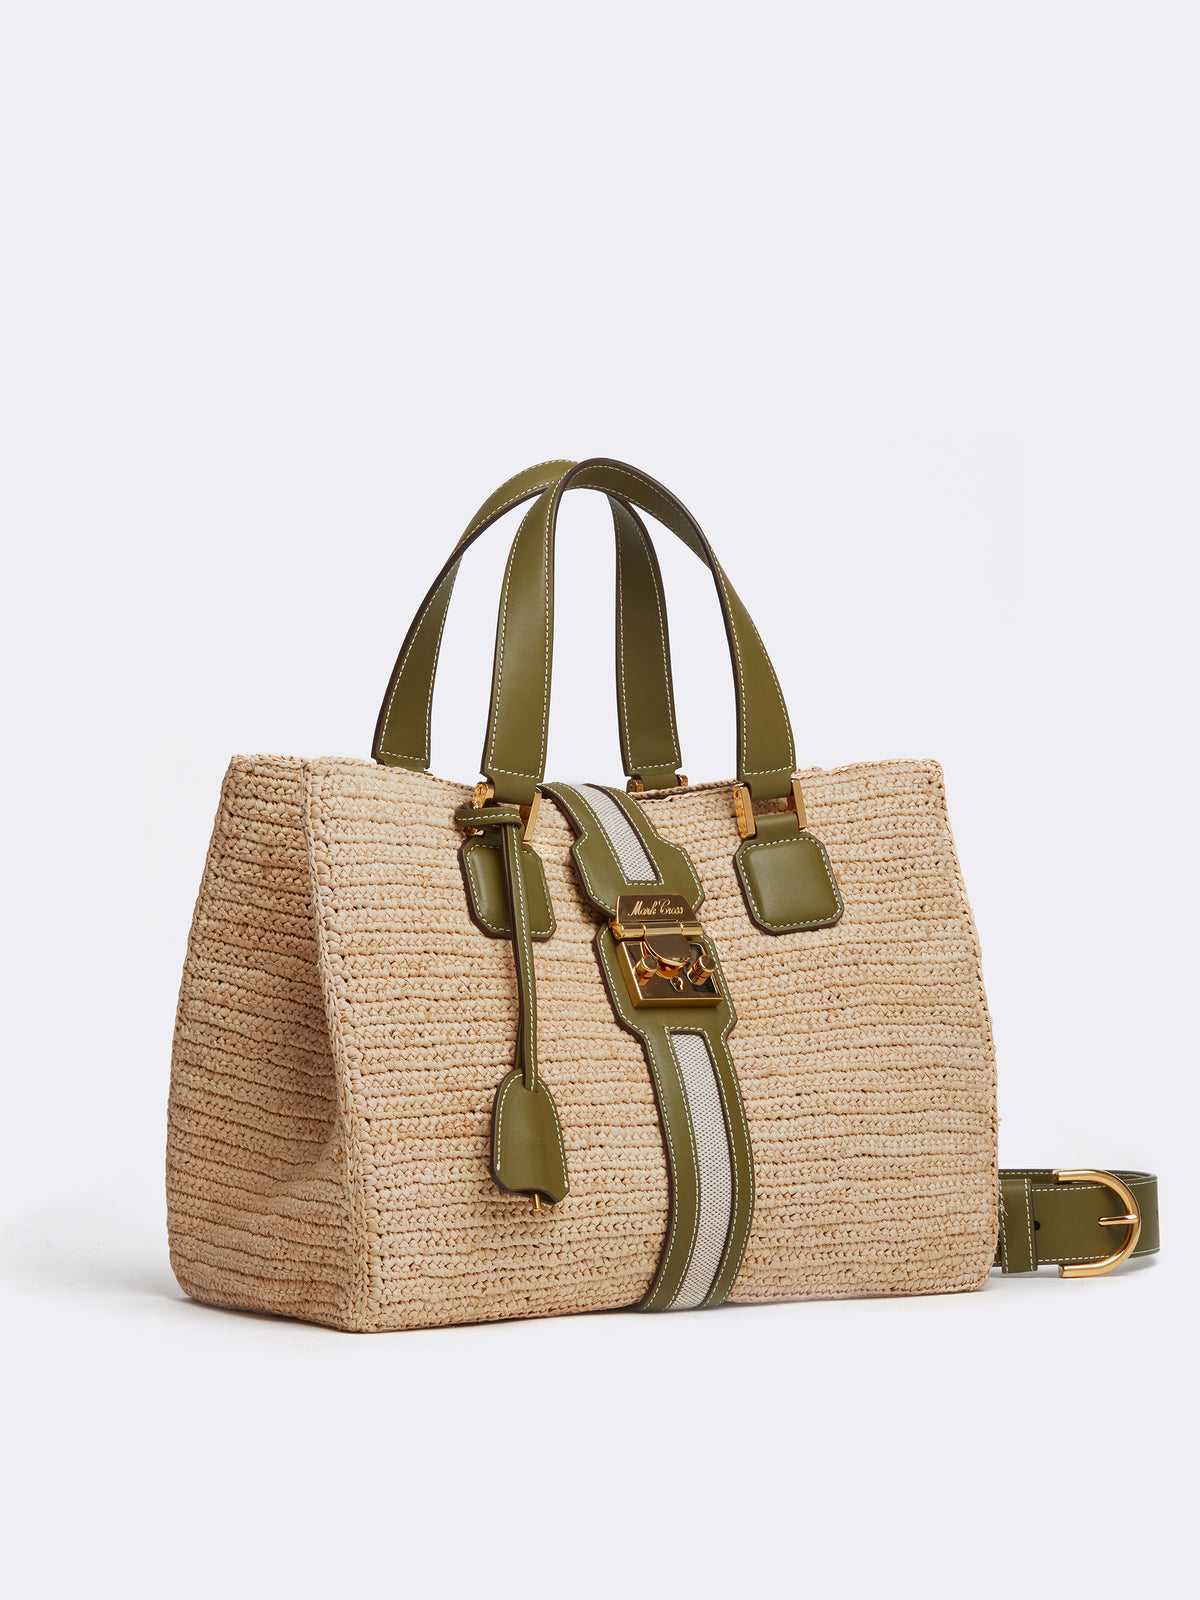 Riviera Raffia & Leather Tote Bag